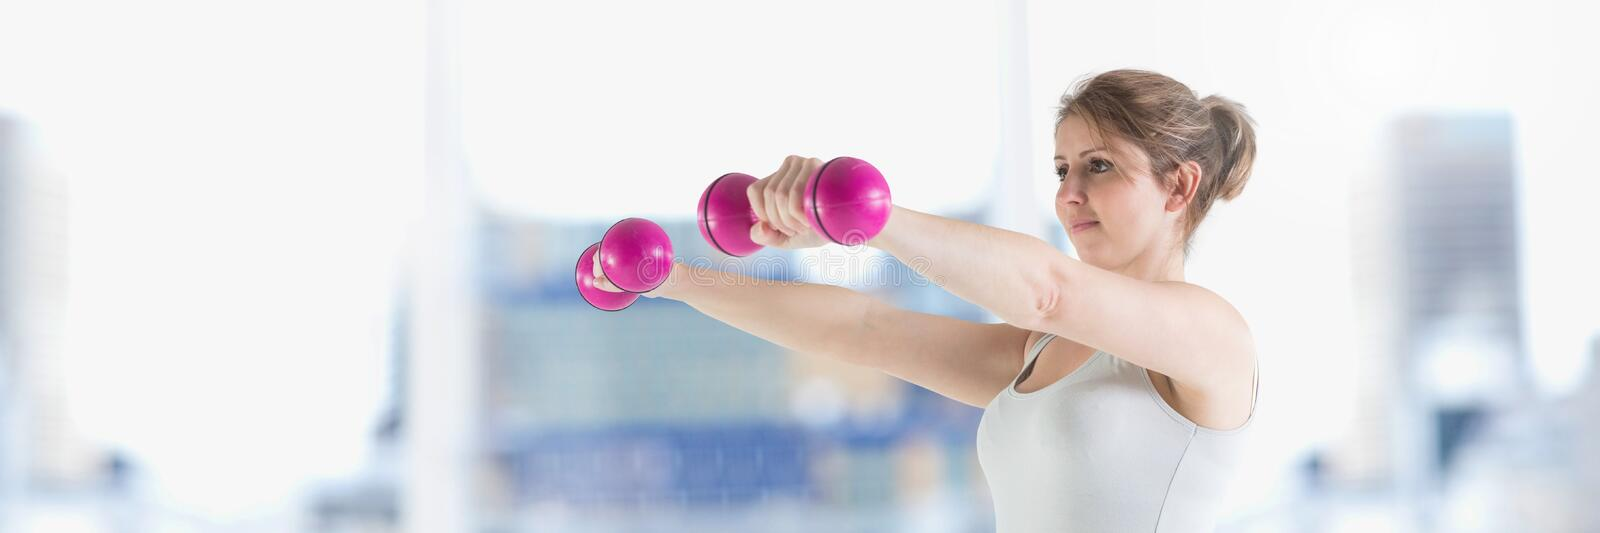 Slim healthy woman lifting weights stock photos